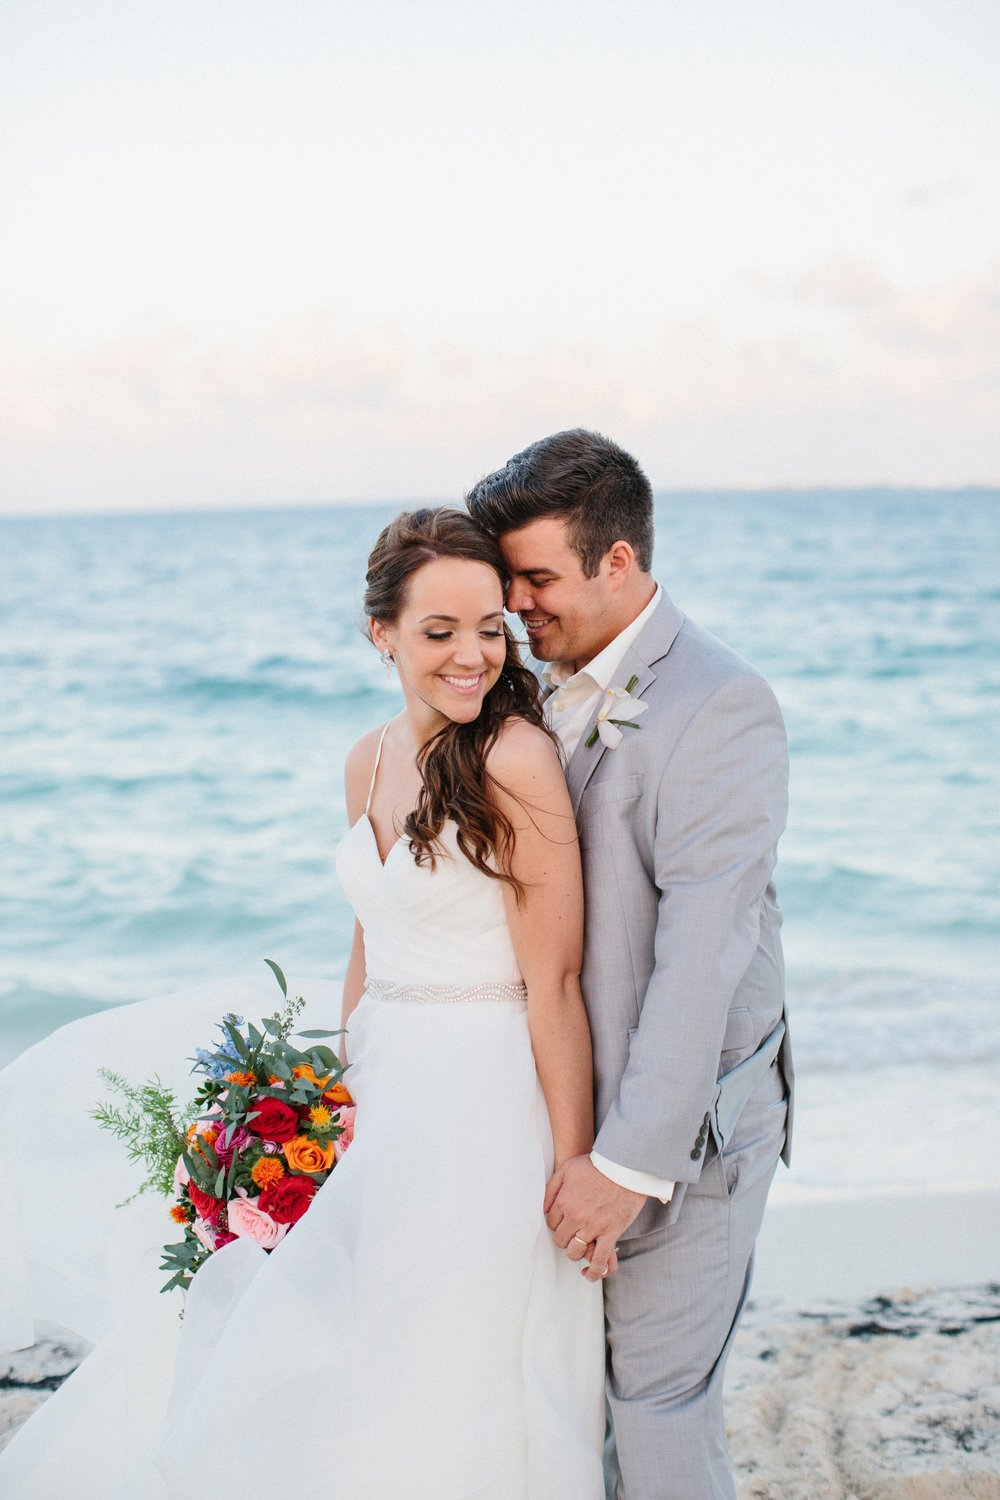 Savanah Loftus Photography_St John Virgin Islands Wedding Photographer_0006.jpg